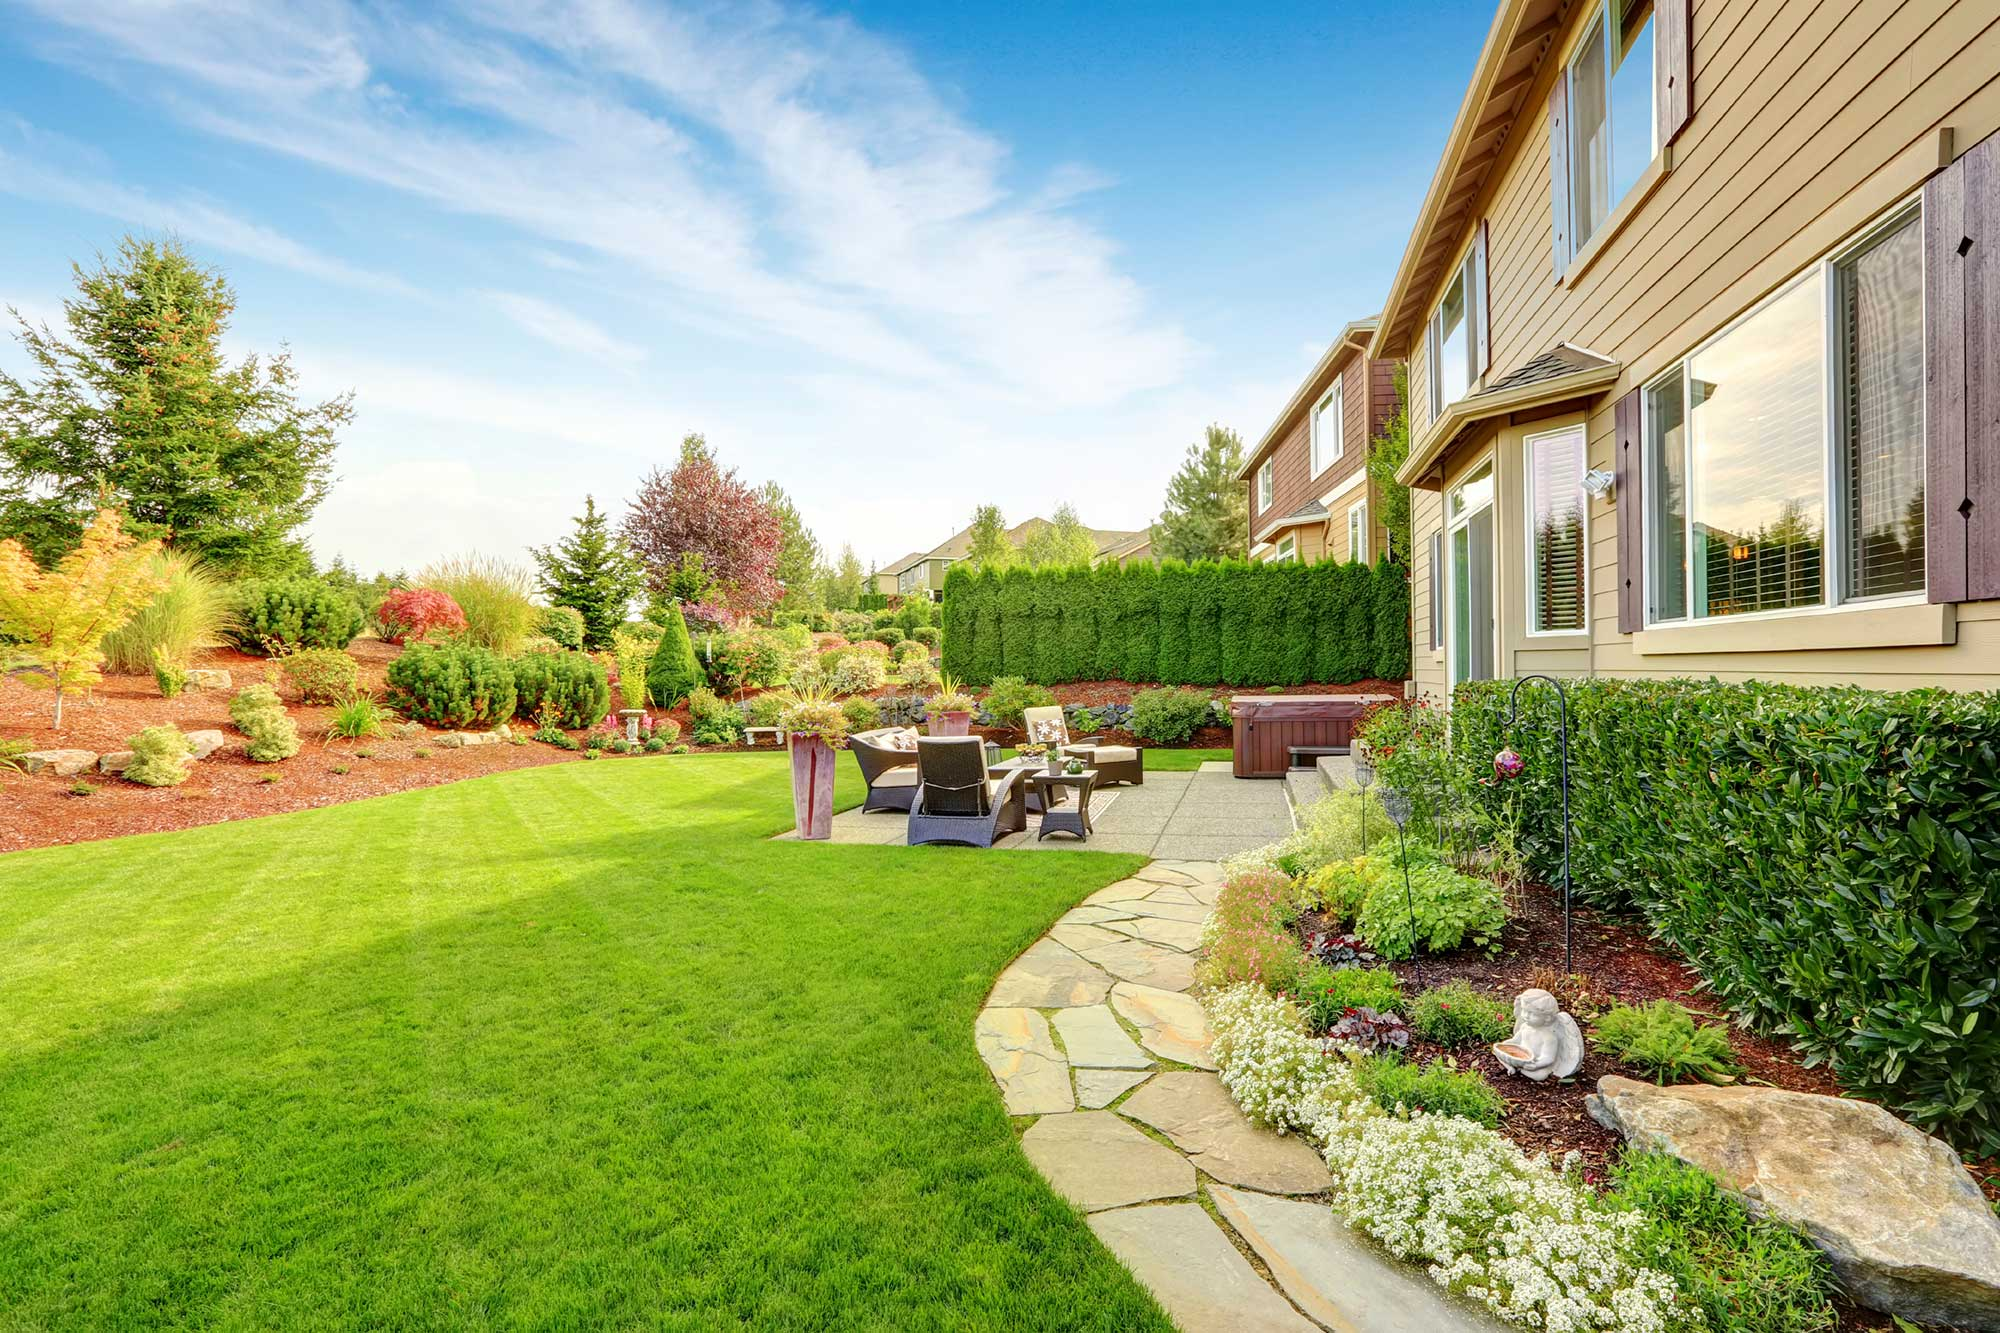 Davenport Landscape is your premier provider for a comprehensive lawn care program.